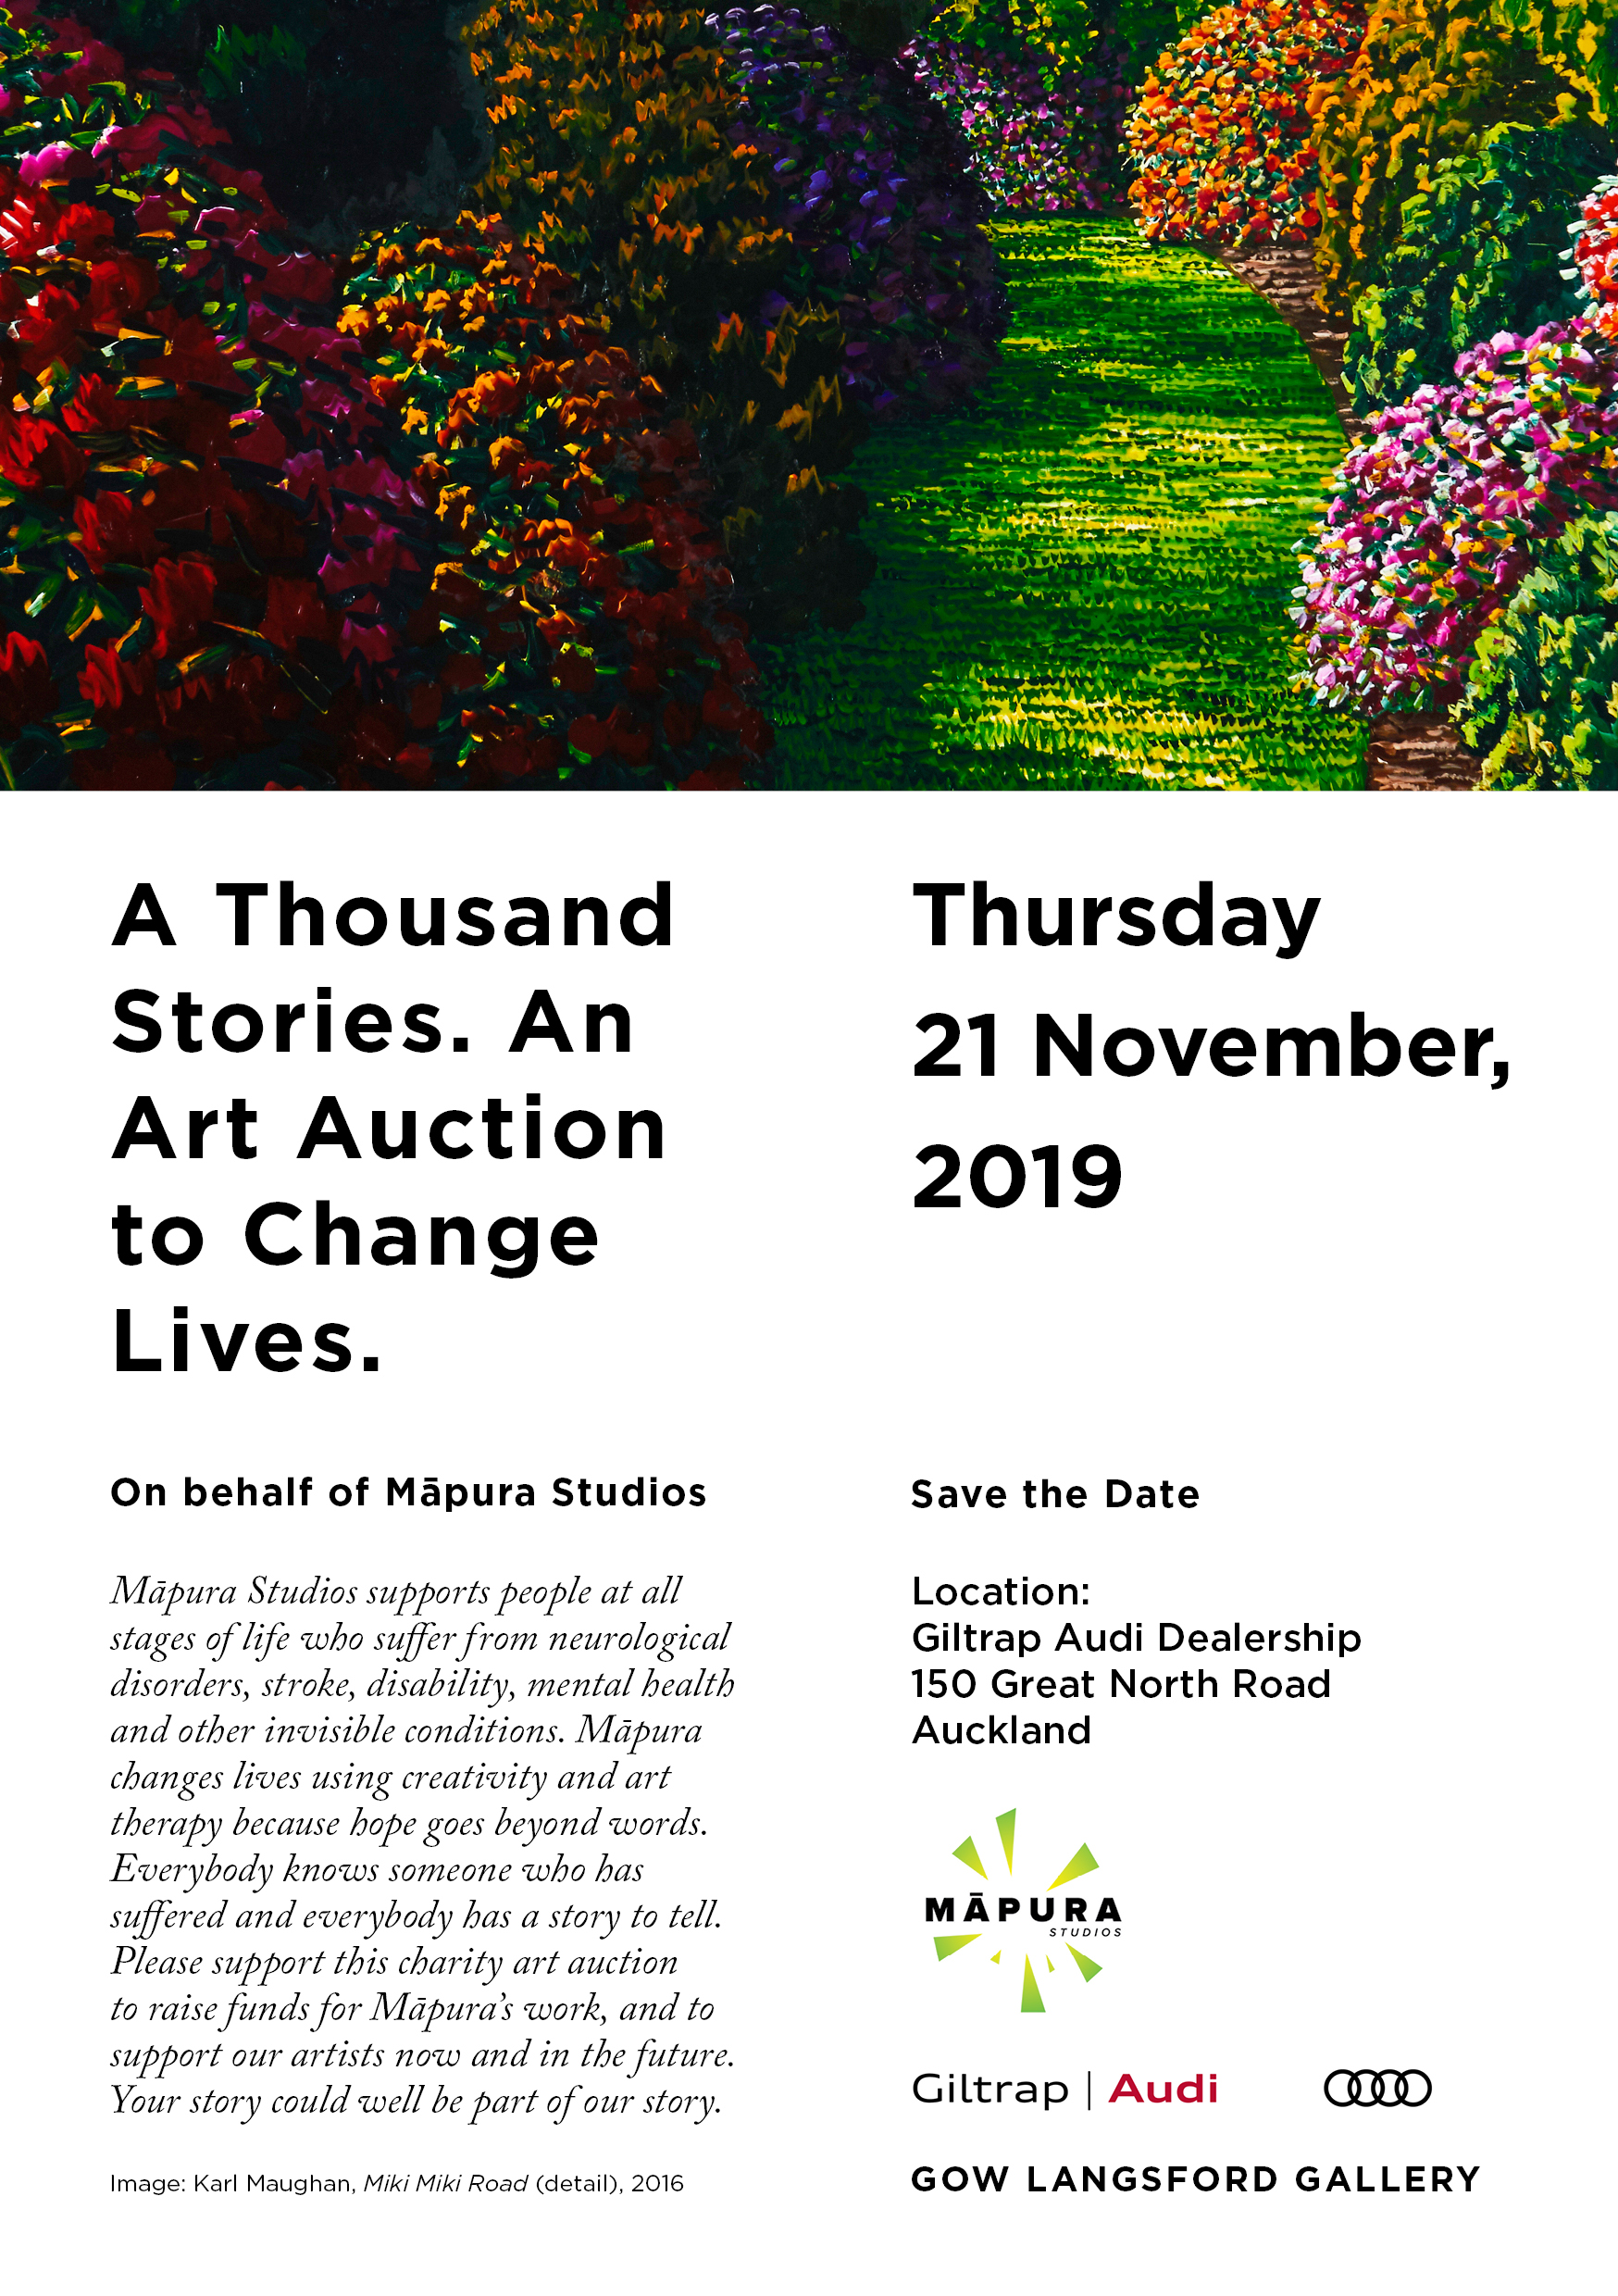 A Thousand Stories - An Art Auction to Change Lives for Mapura Studios